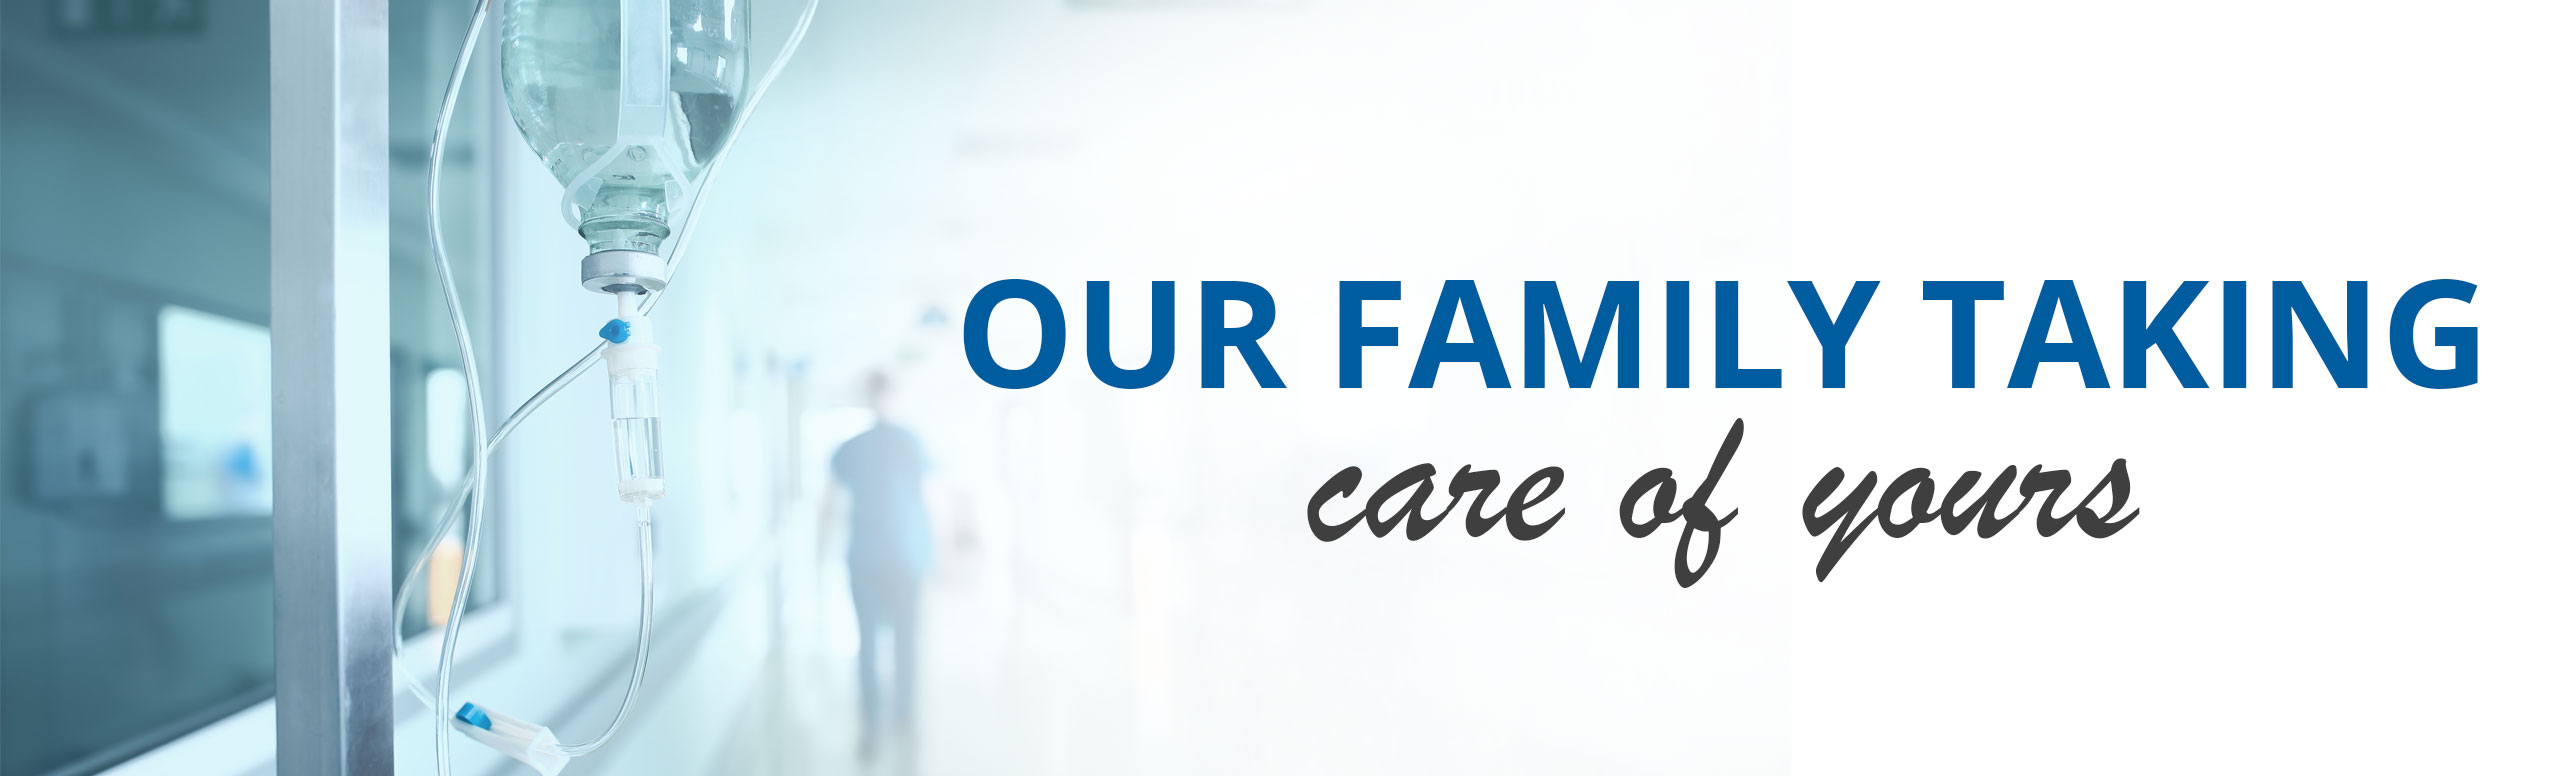 Our Family Taking care of yours